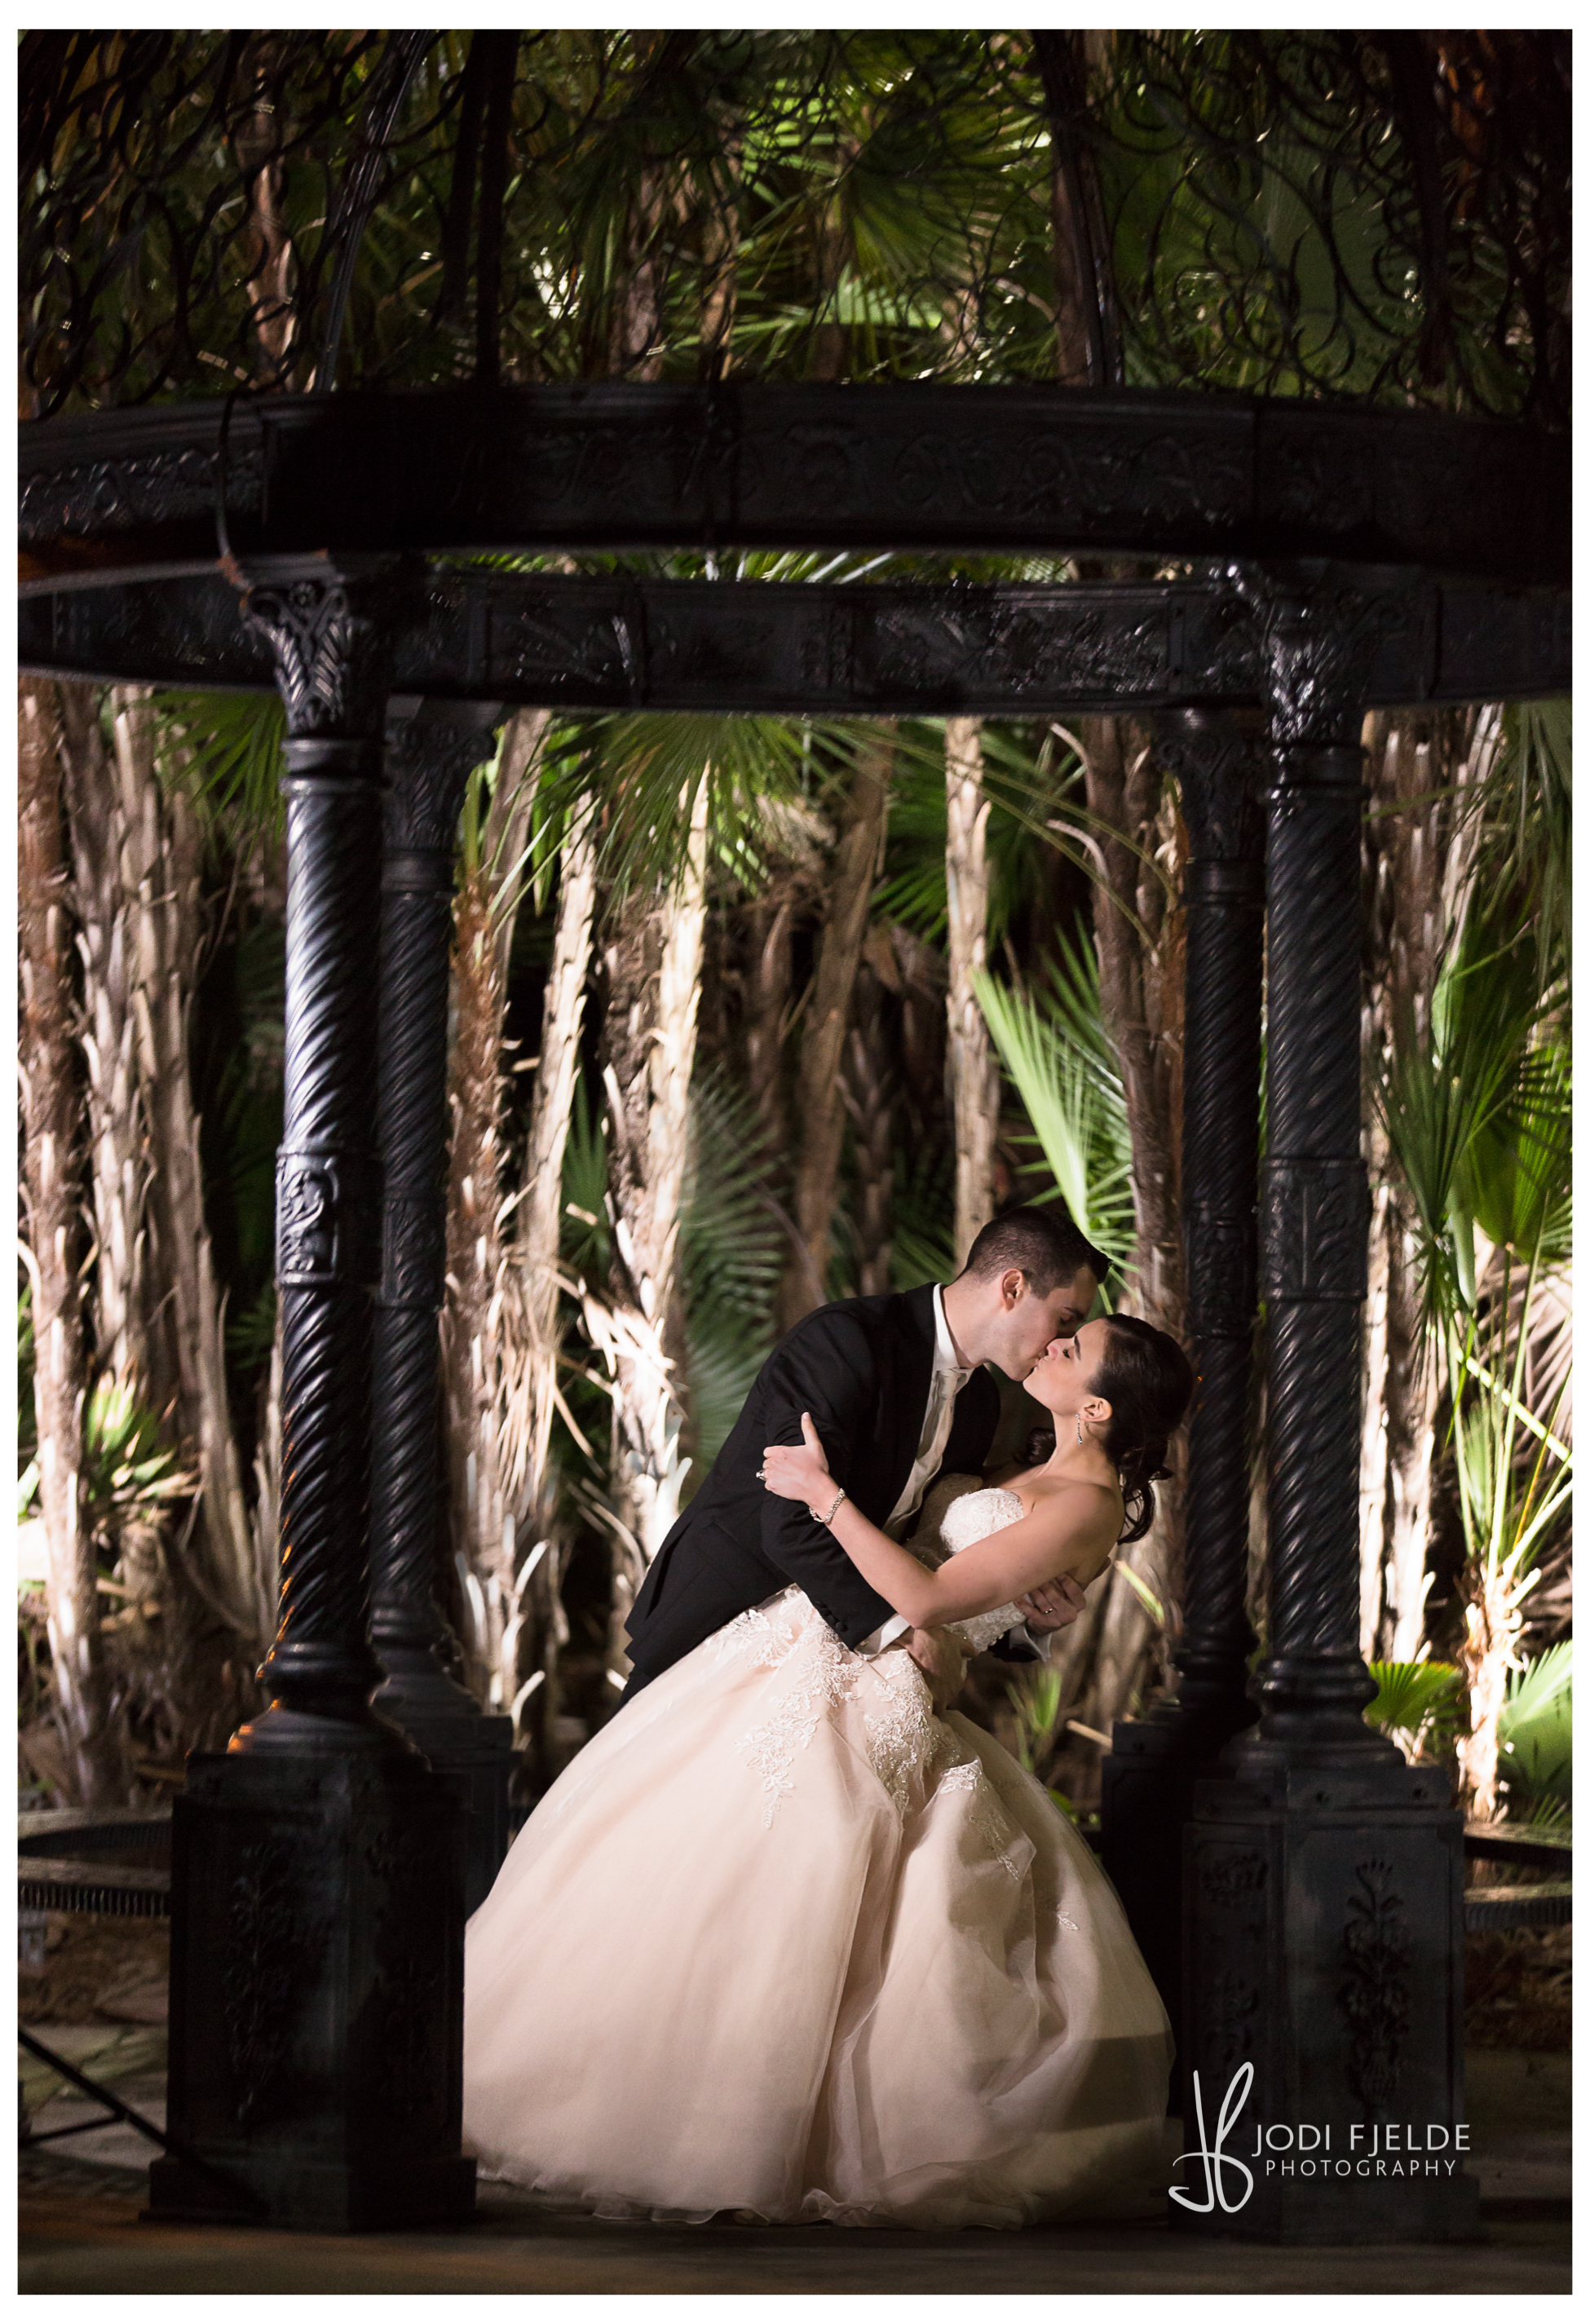 Benvenuto_Palm_Beach_Wedding_Jewish_Michelle & Jason_Jodi_Fjedle_Photography 80.jpg